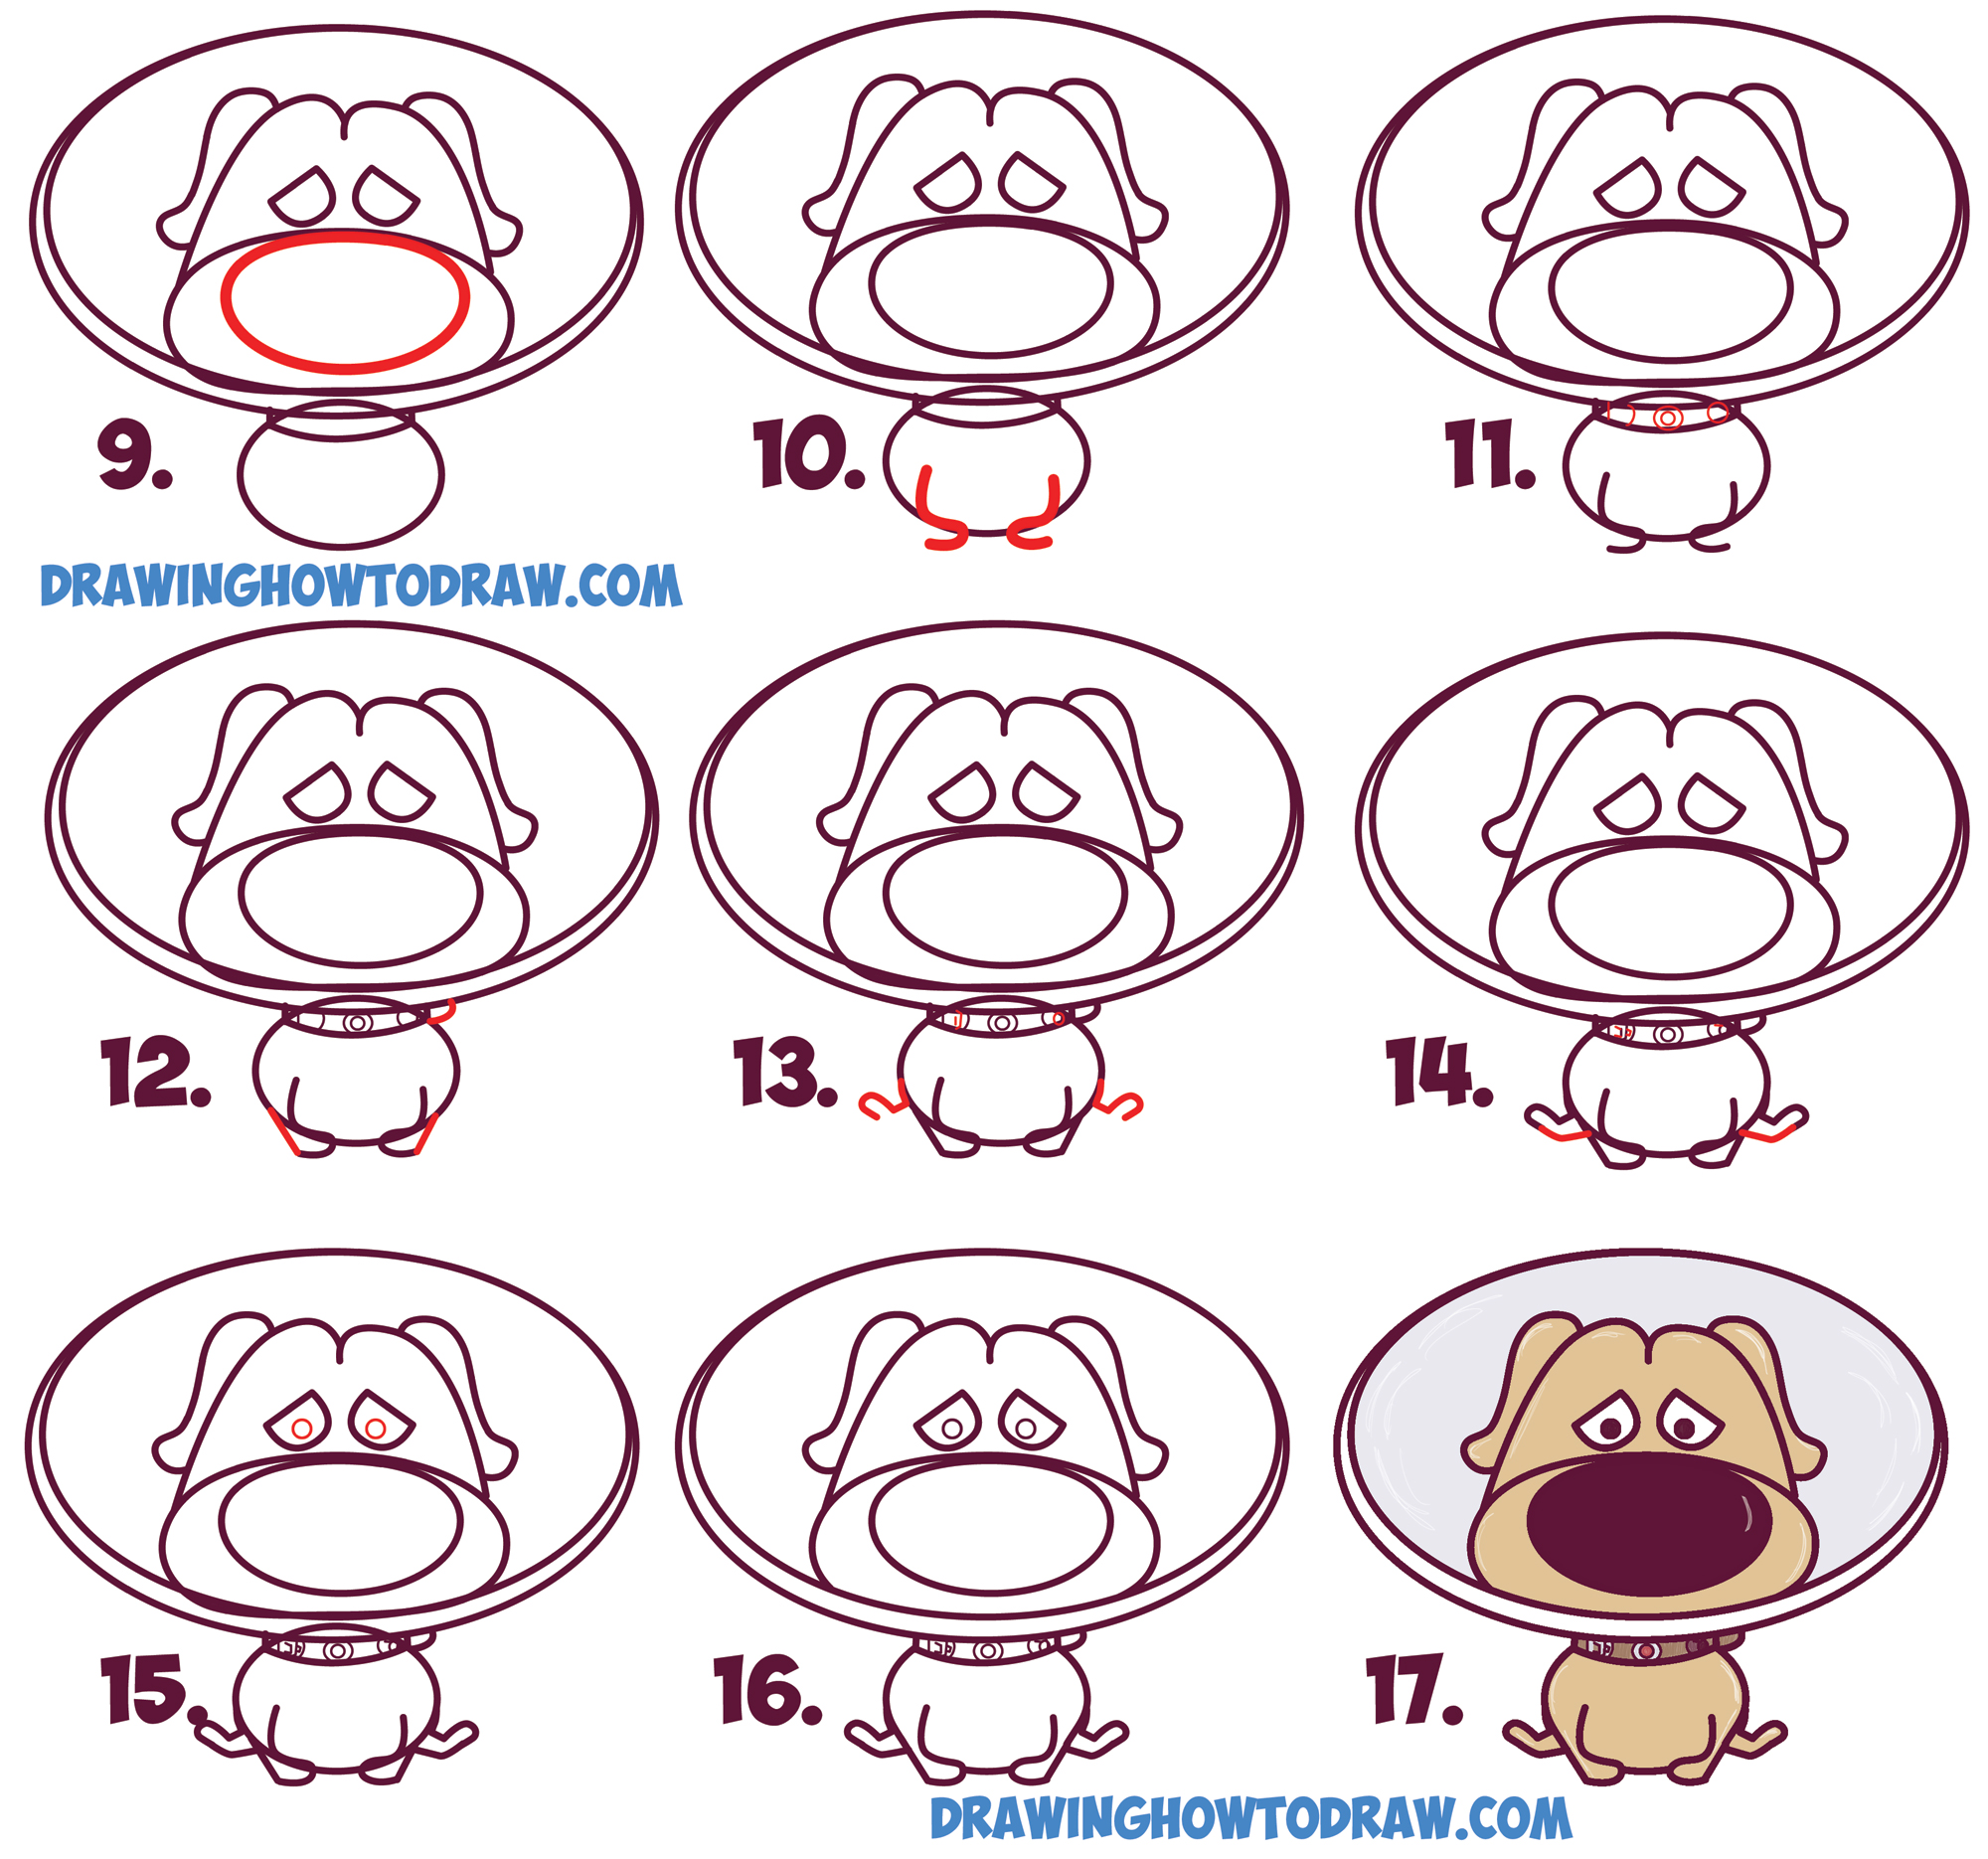 Chibi) From Up The Dog From Up How To Draw A Face In 12 Steps